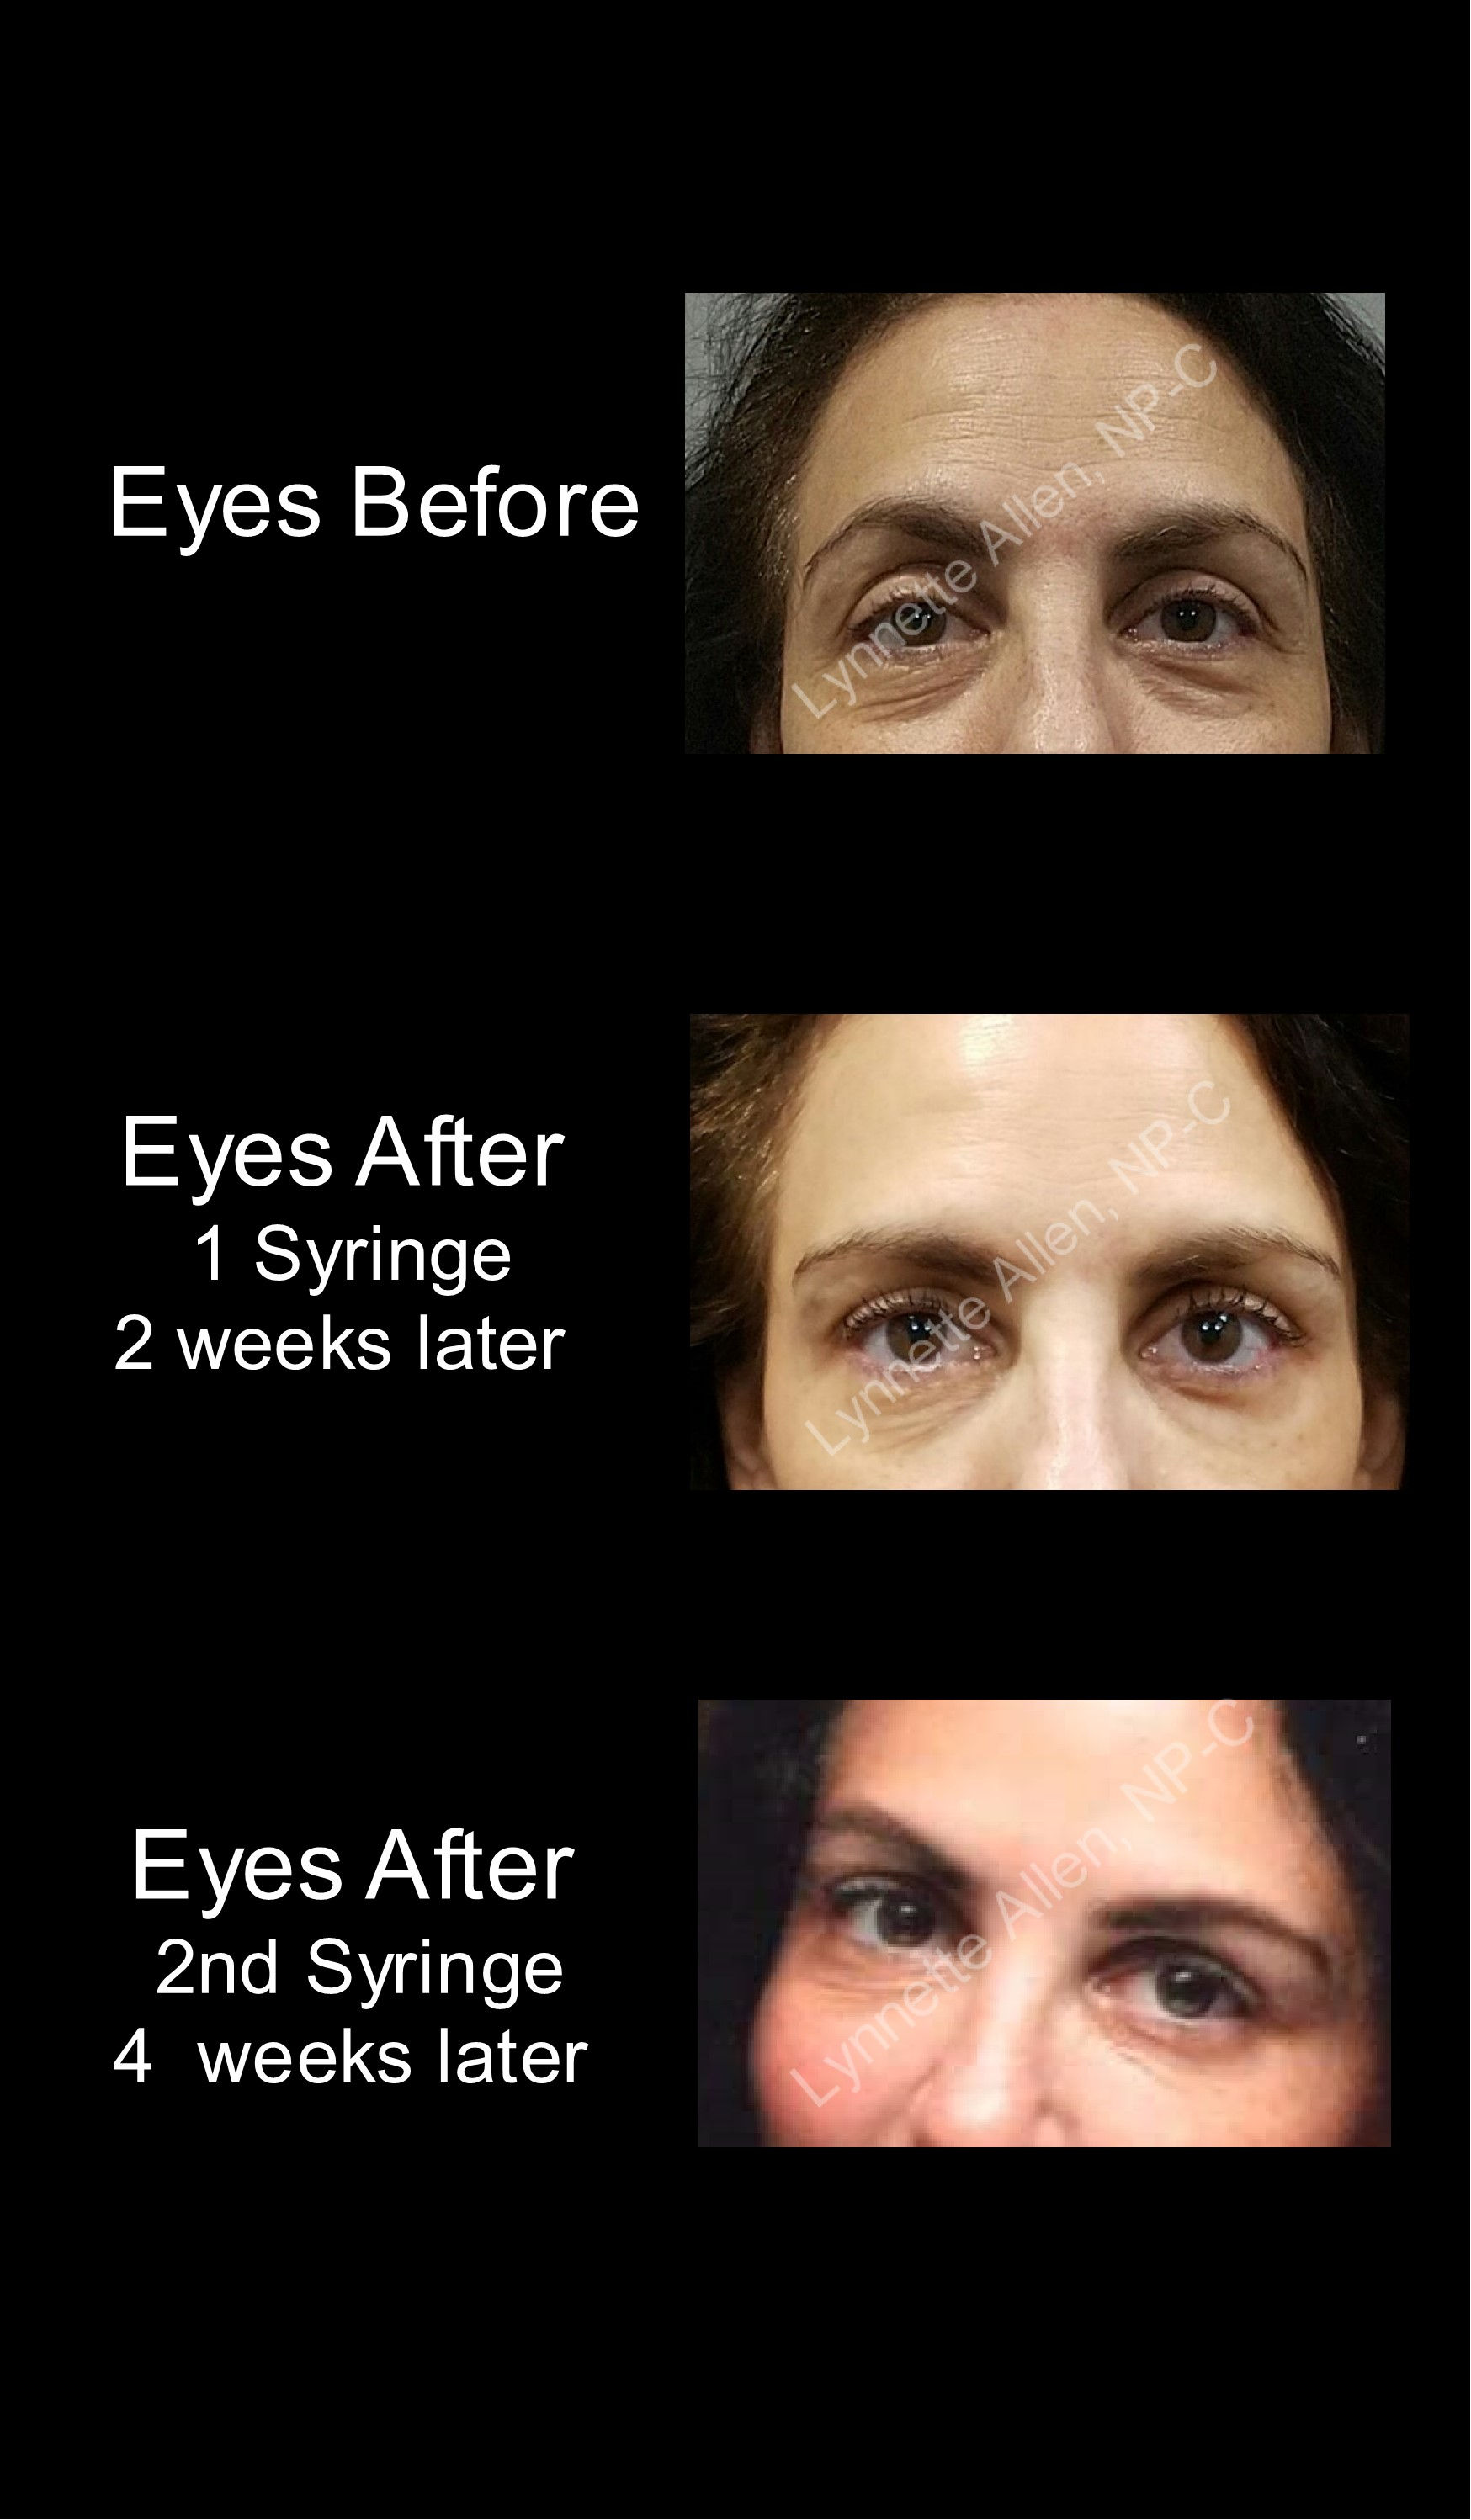 Eyes and Tears Troughs